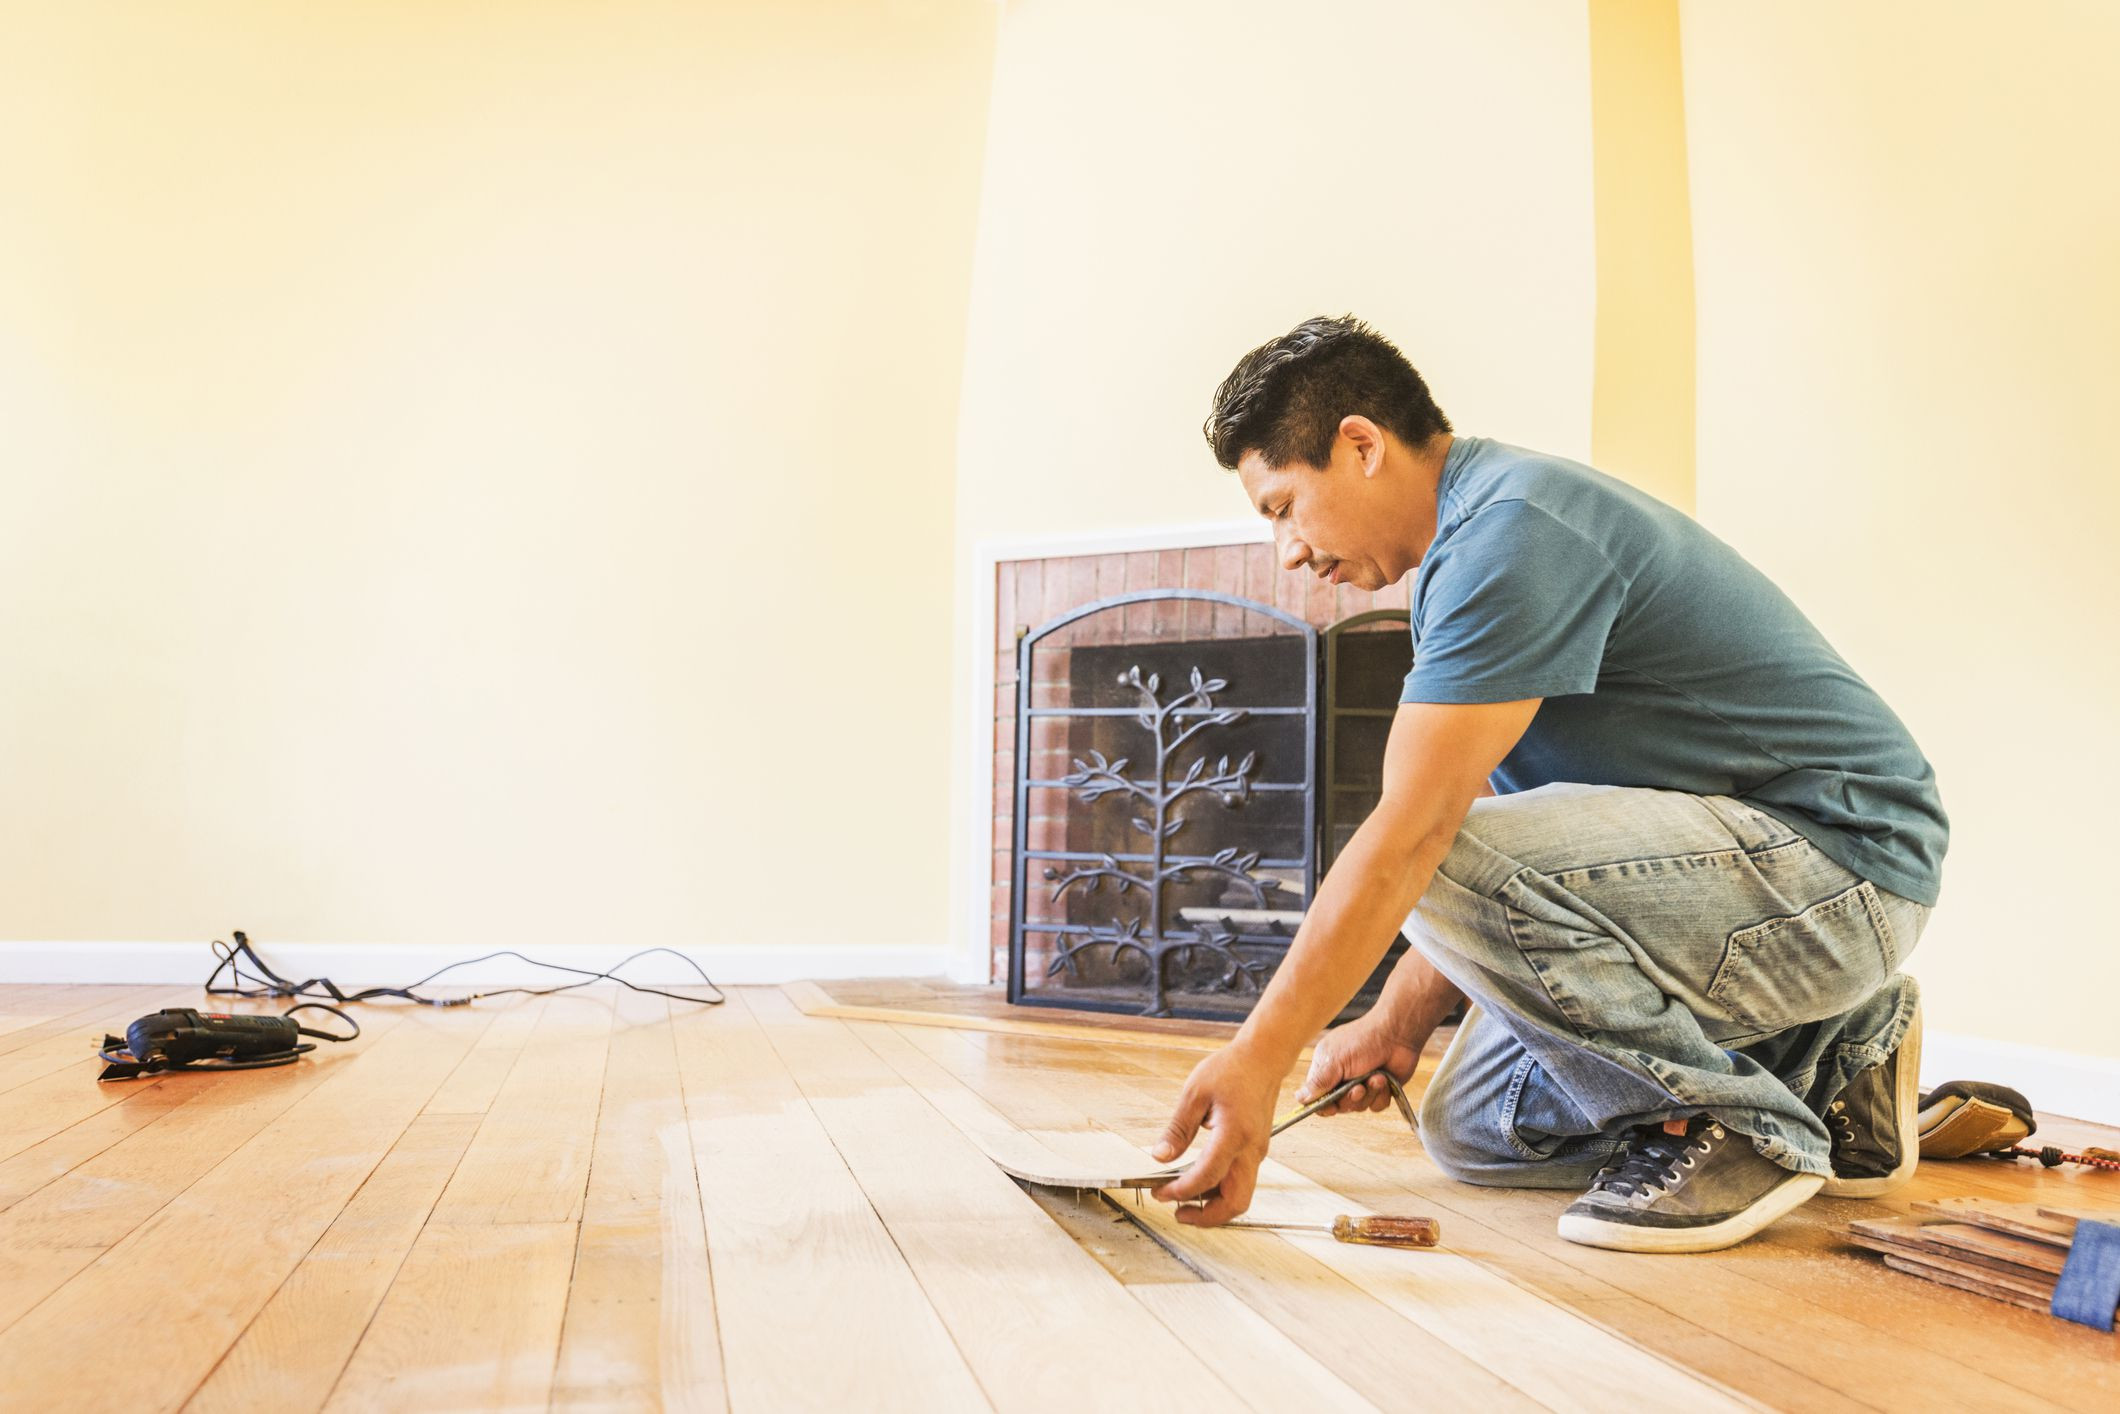 hardwood floor repair companies of hardwood installer how to hire and what to expect in installing wood flooring 592016327 57af51a23df78cd39cfa08d9